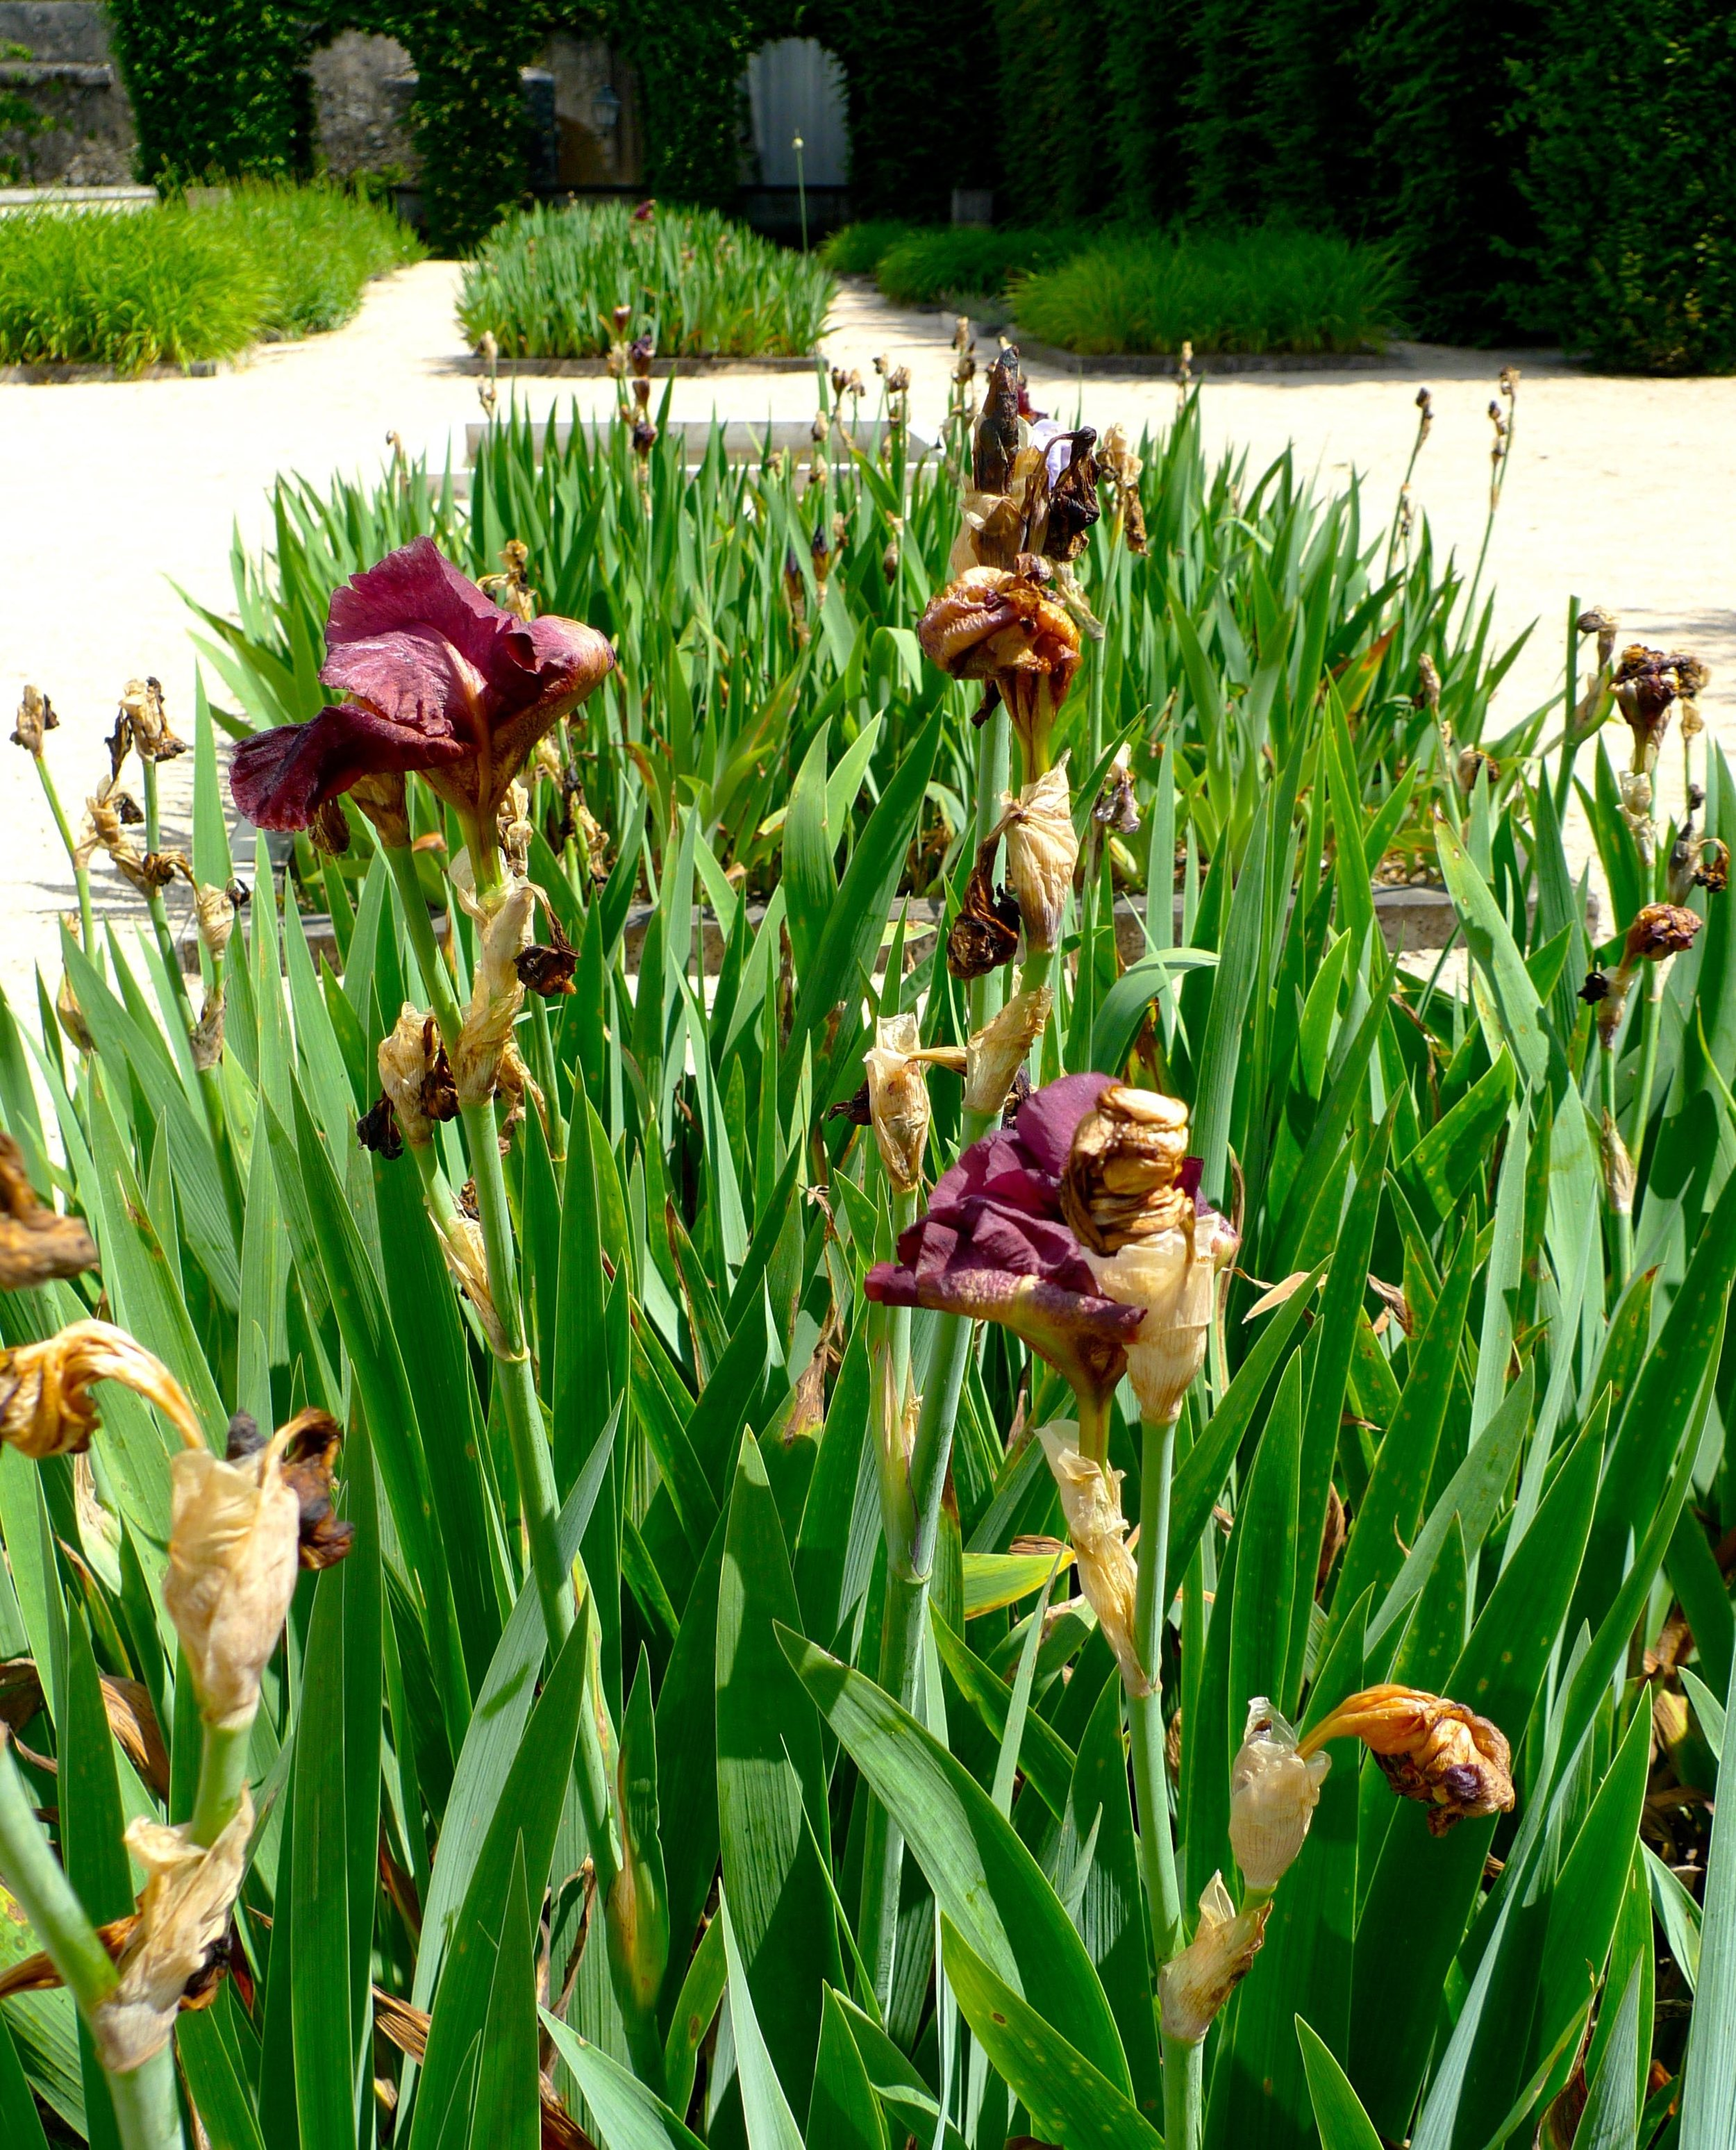 The irises were just past their best